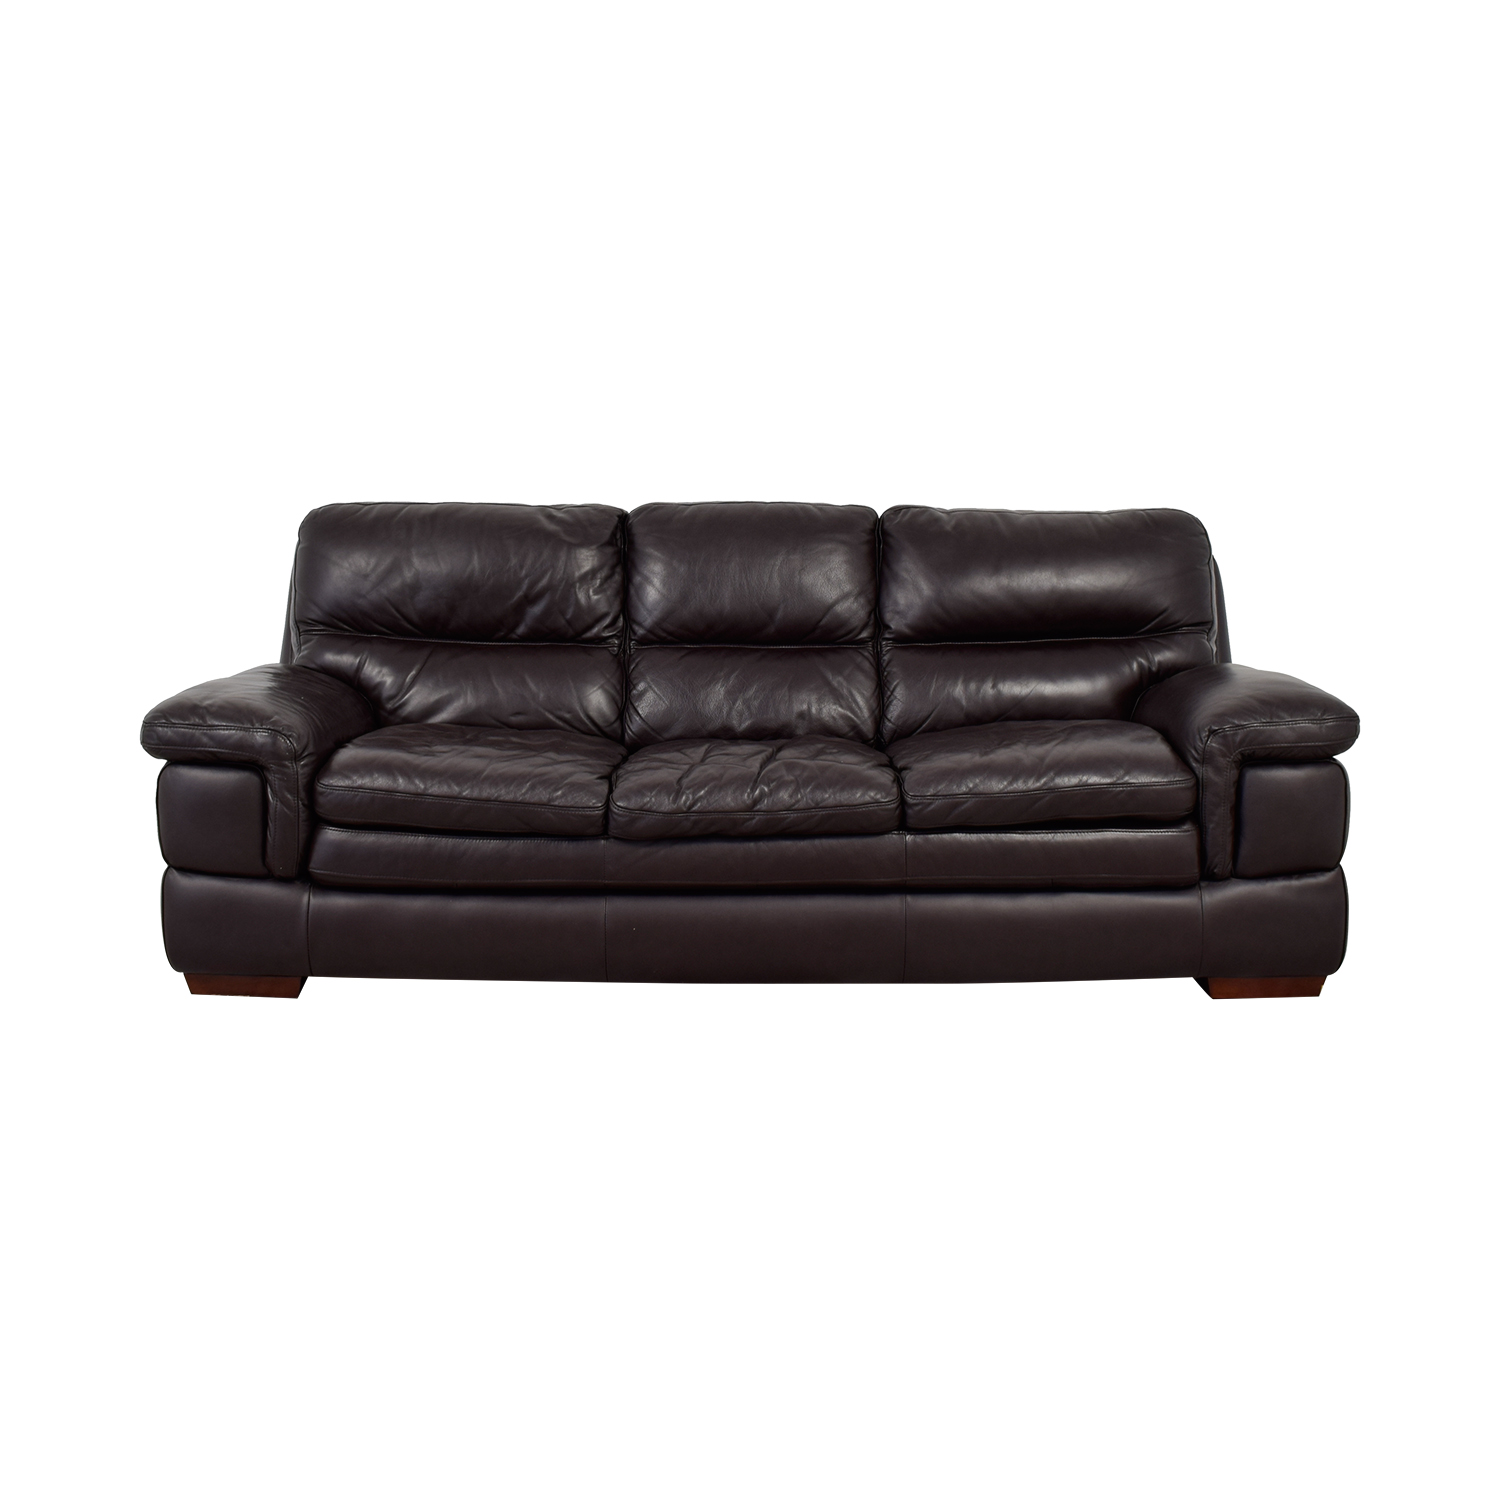 buy Bob's Furniture Carter Brown Leather Three-Cushion Sofa Bob's Furniture